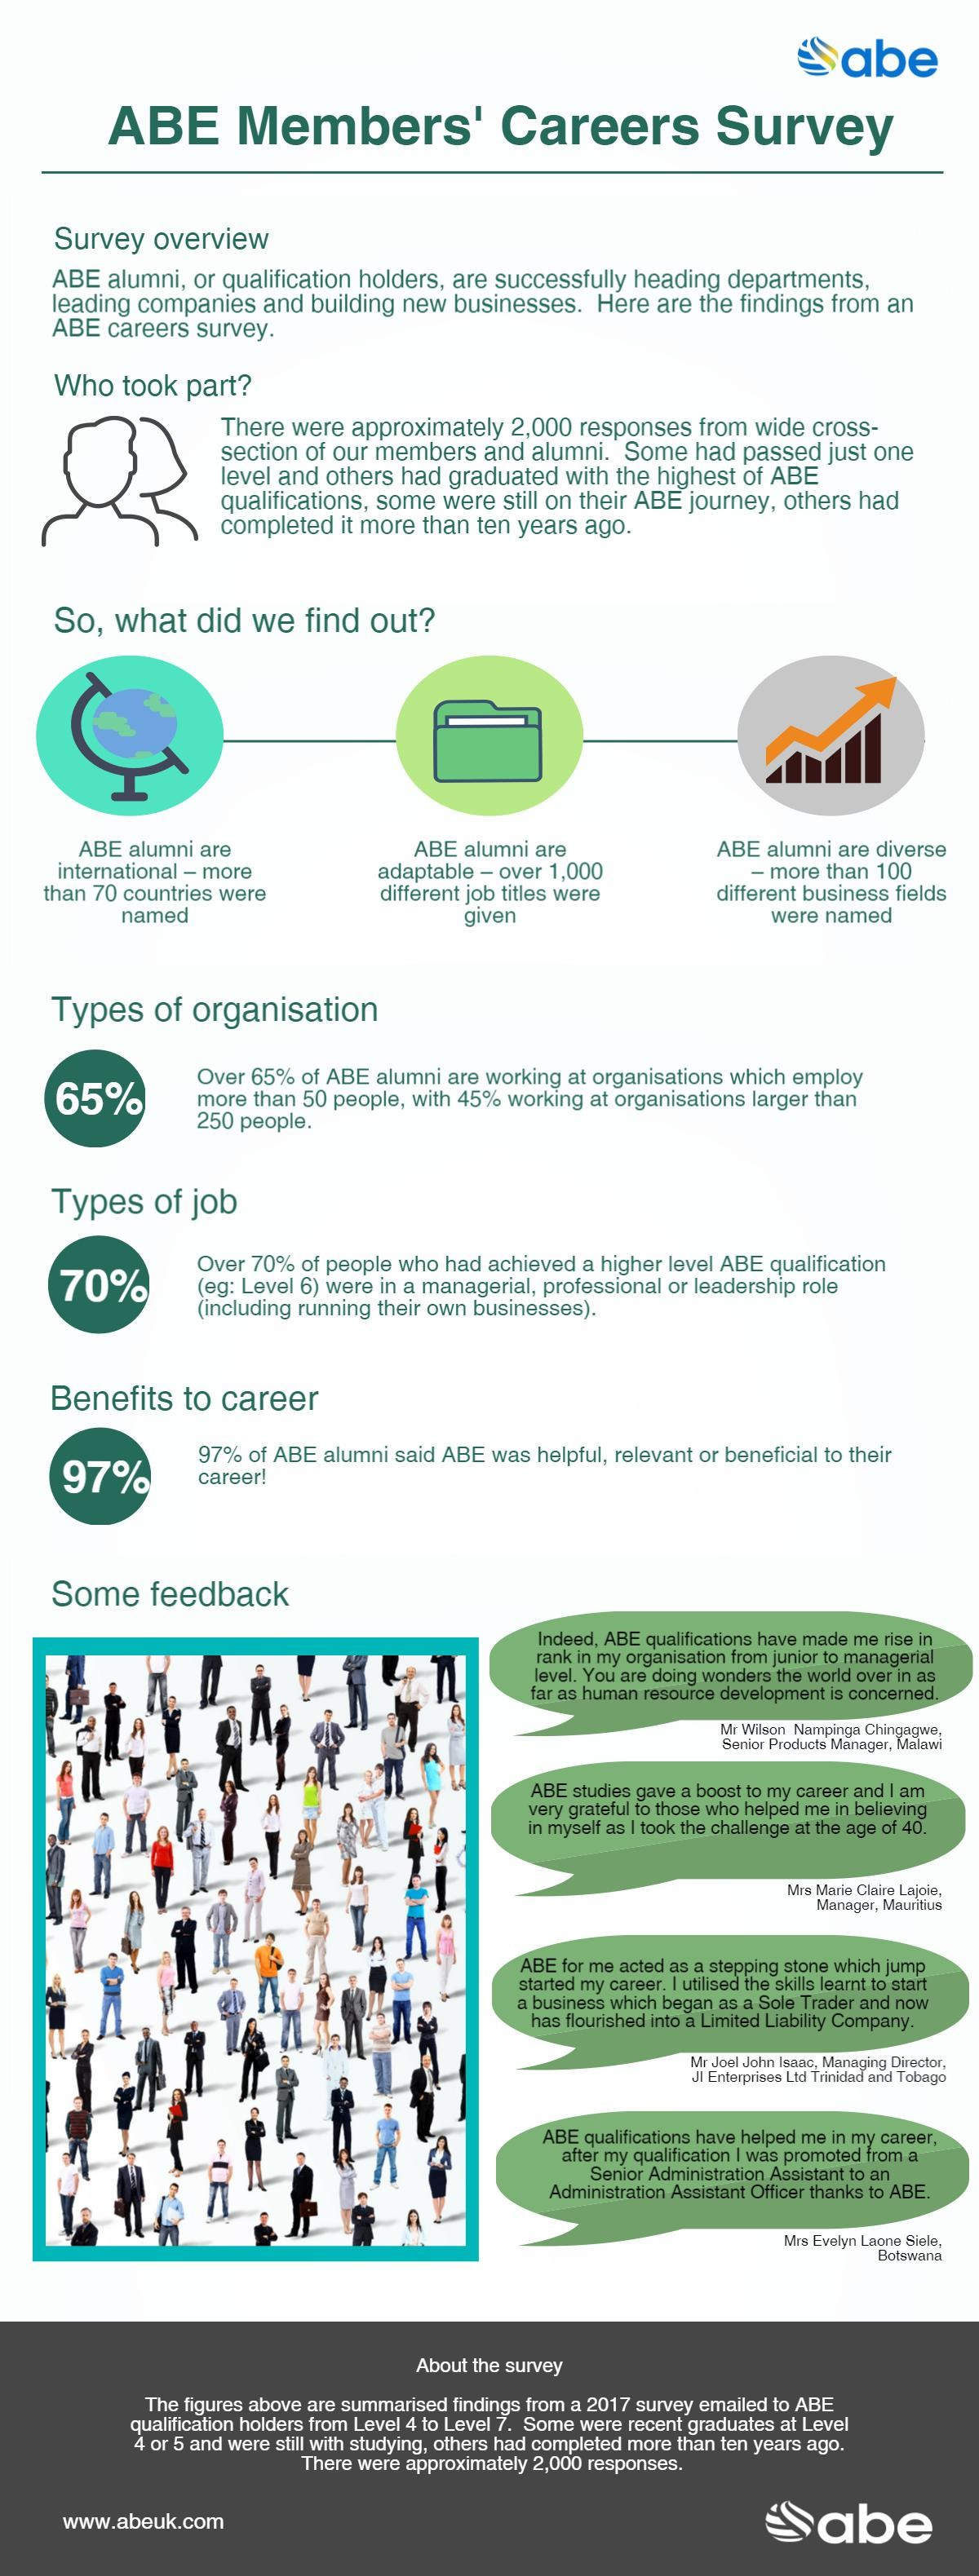 Careers survey infographic